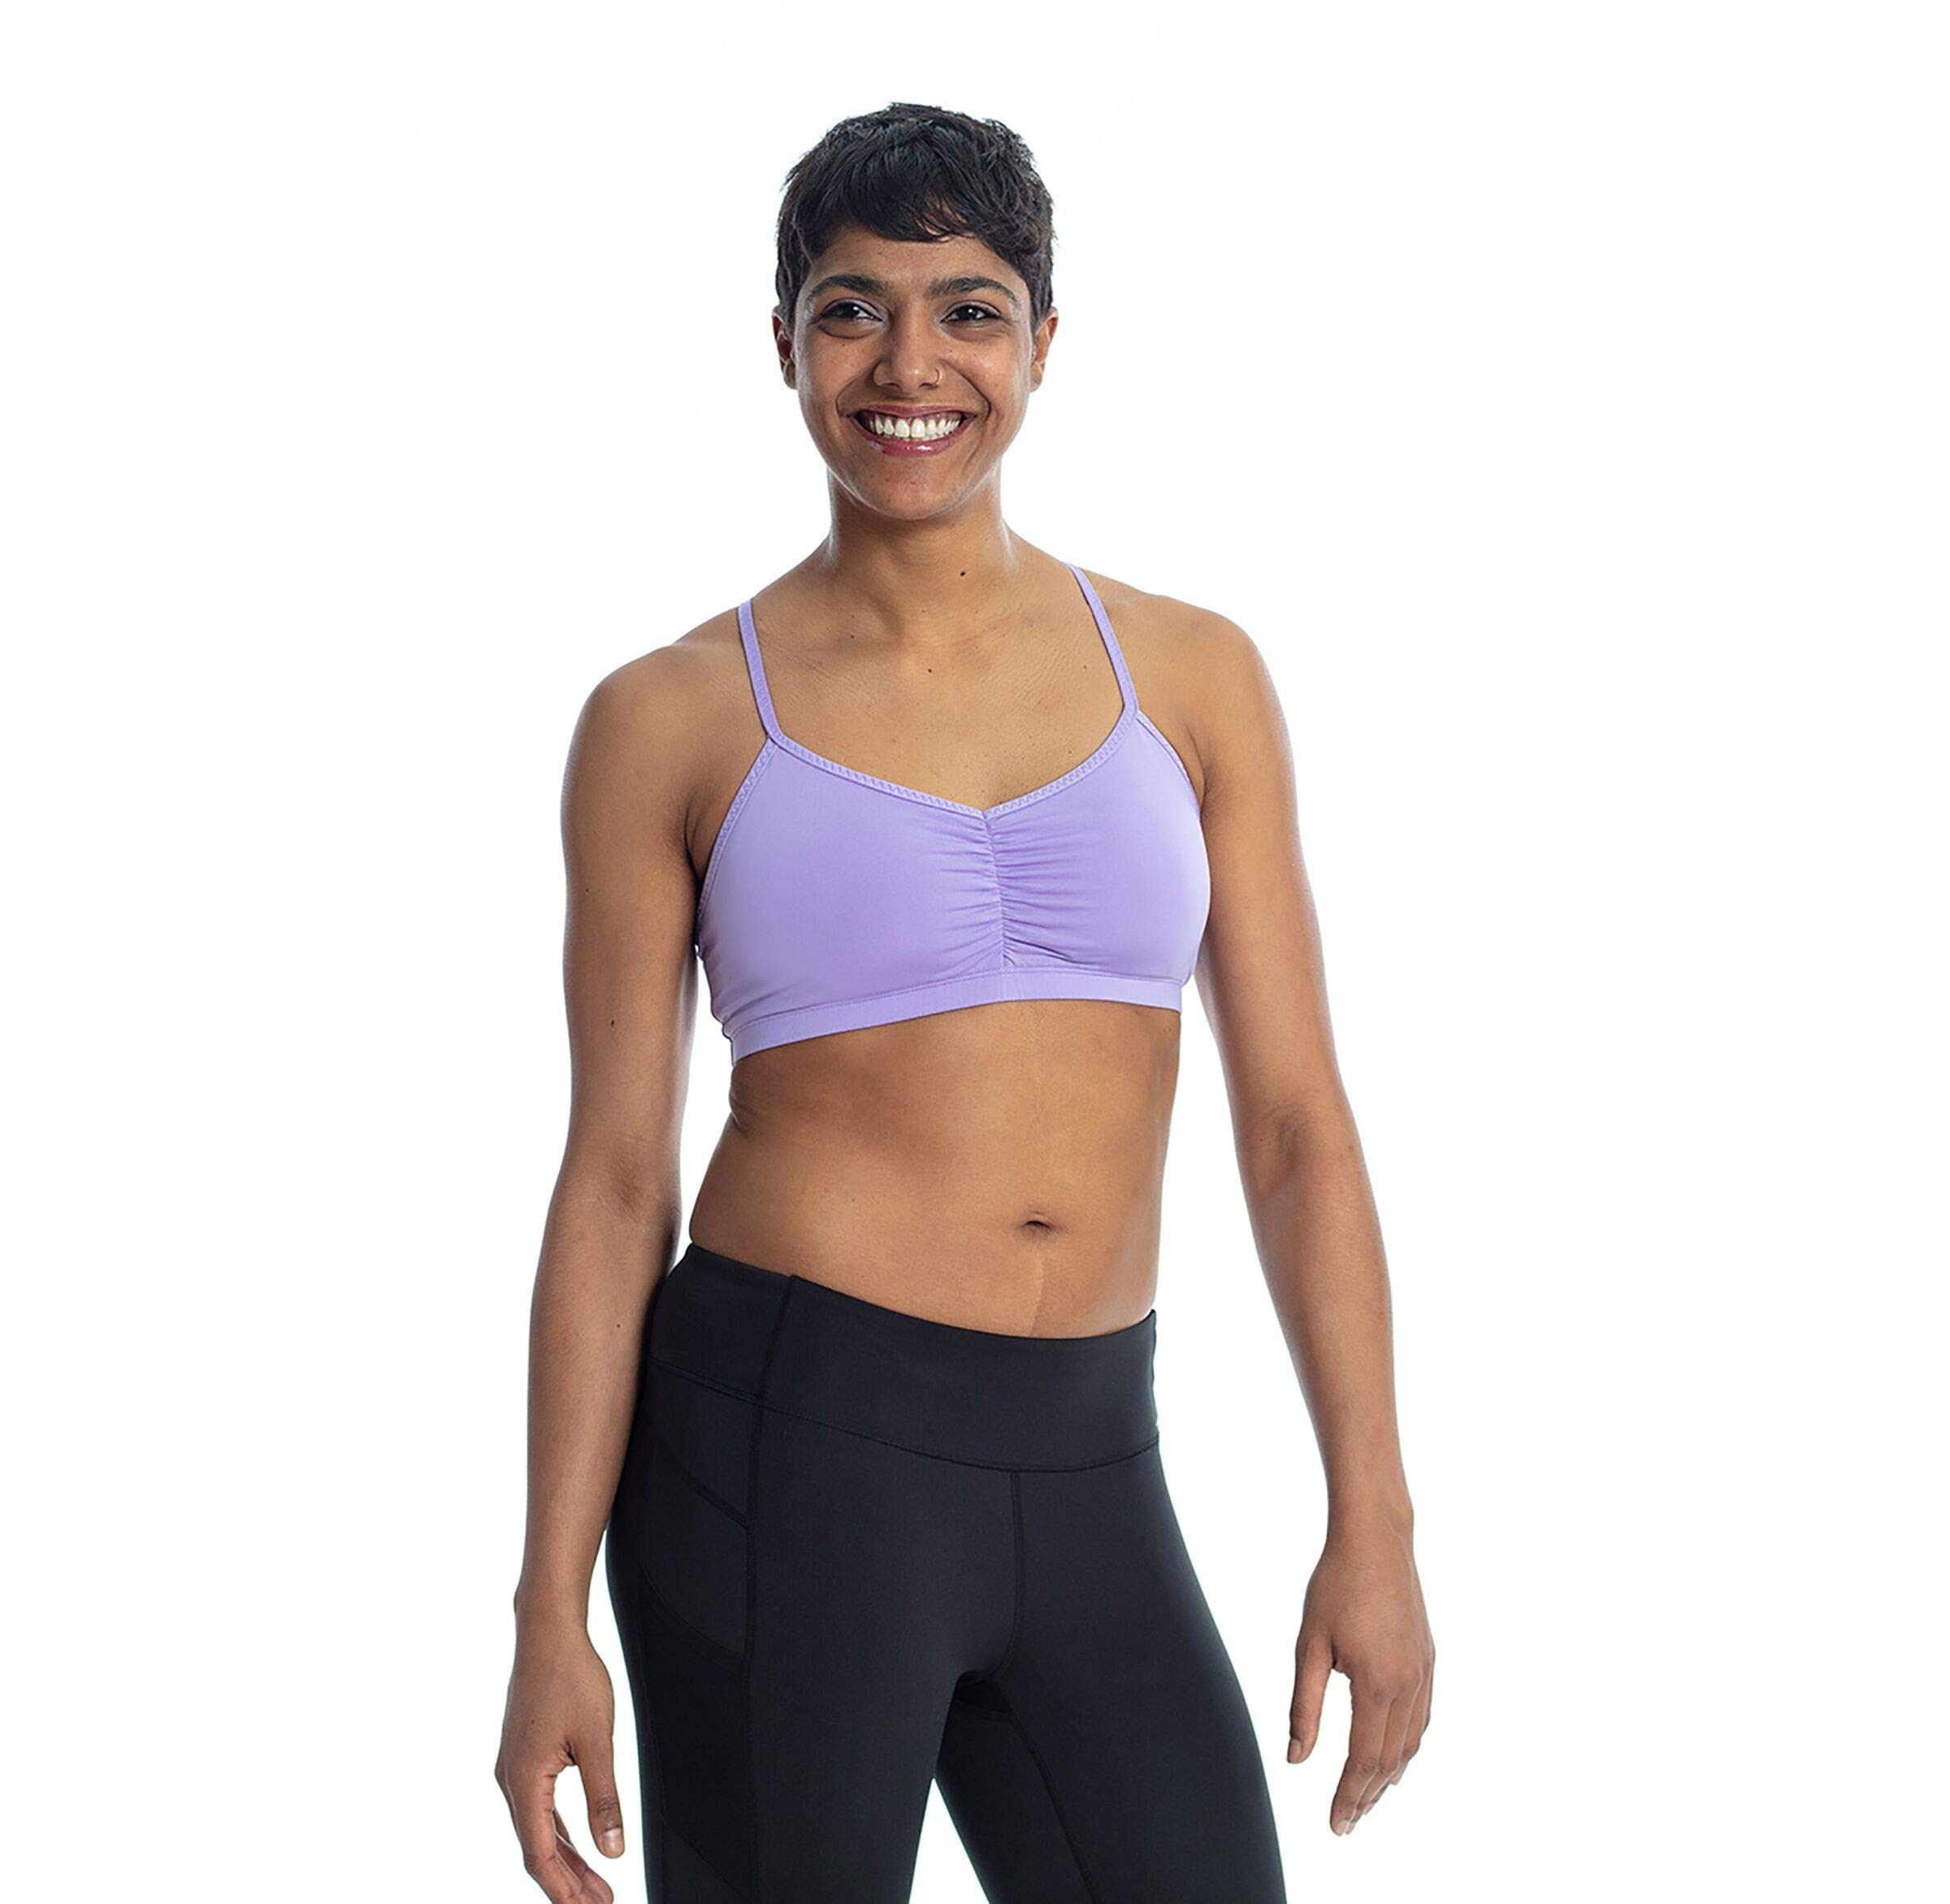 Handful Women's Adjustable Sports Bra with Removable Pads, Seamless Workout Bras, LavendHer, X-Small